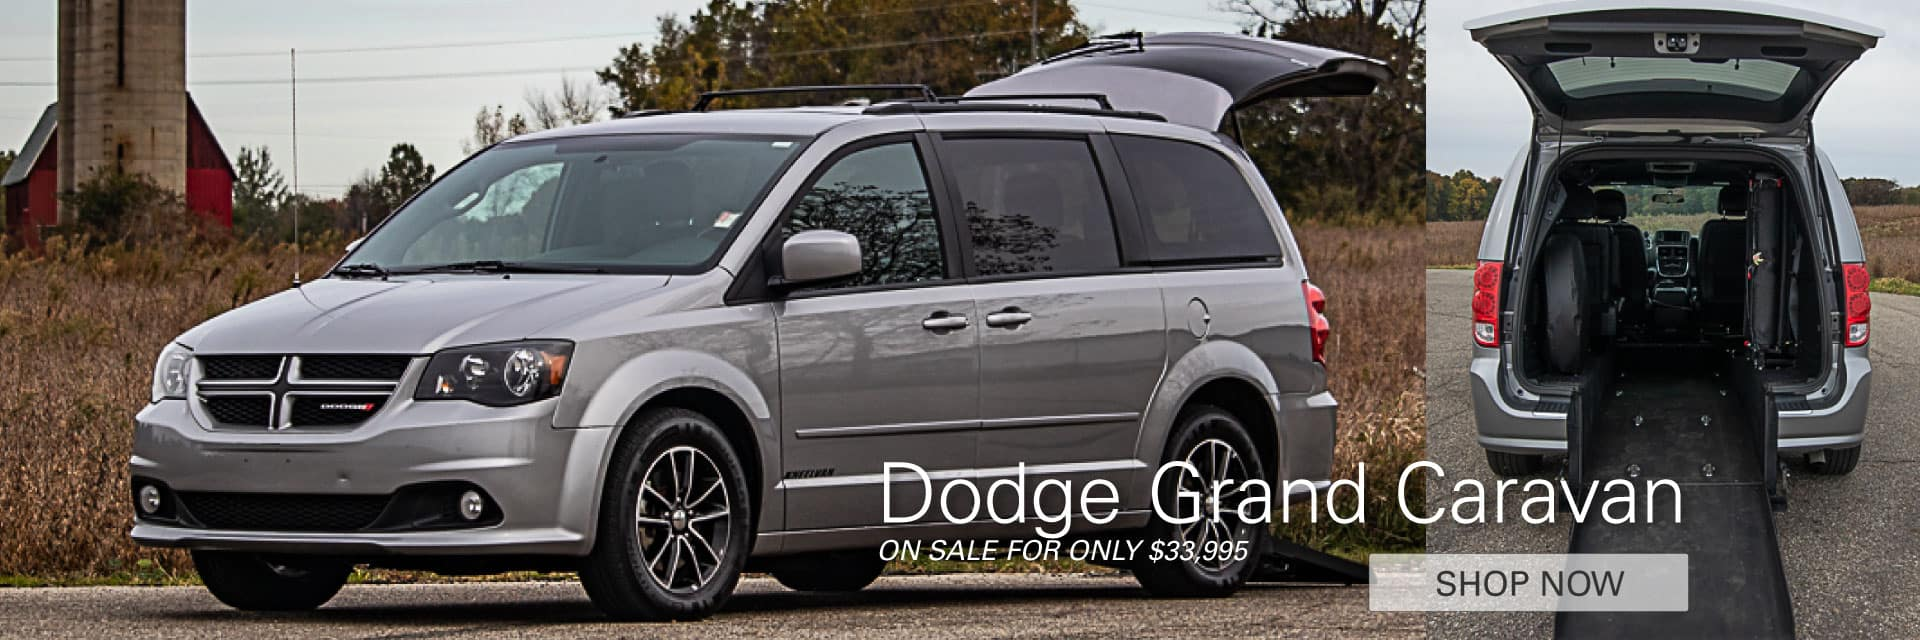 Dodge Grand Caravan On Sale For Only $33,995